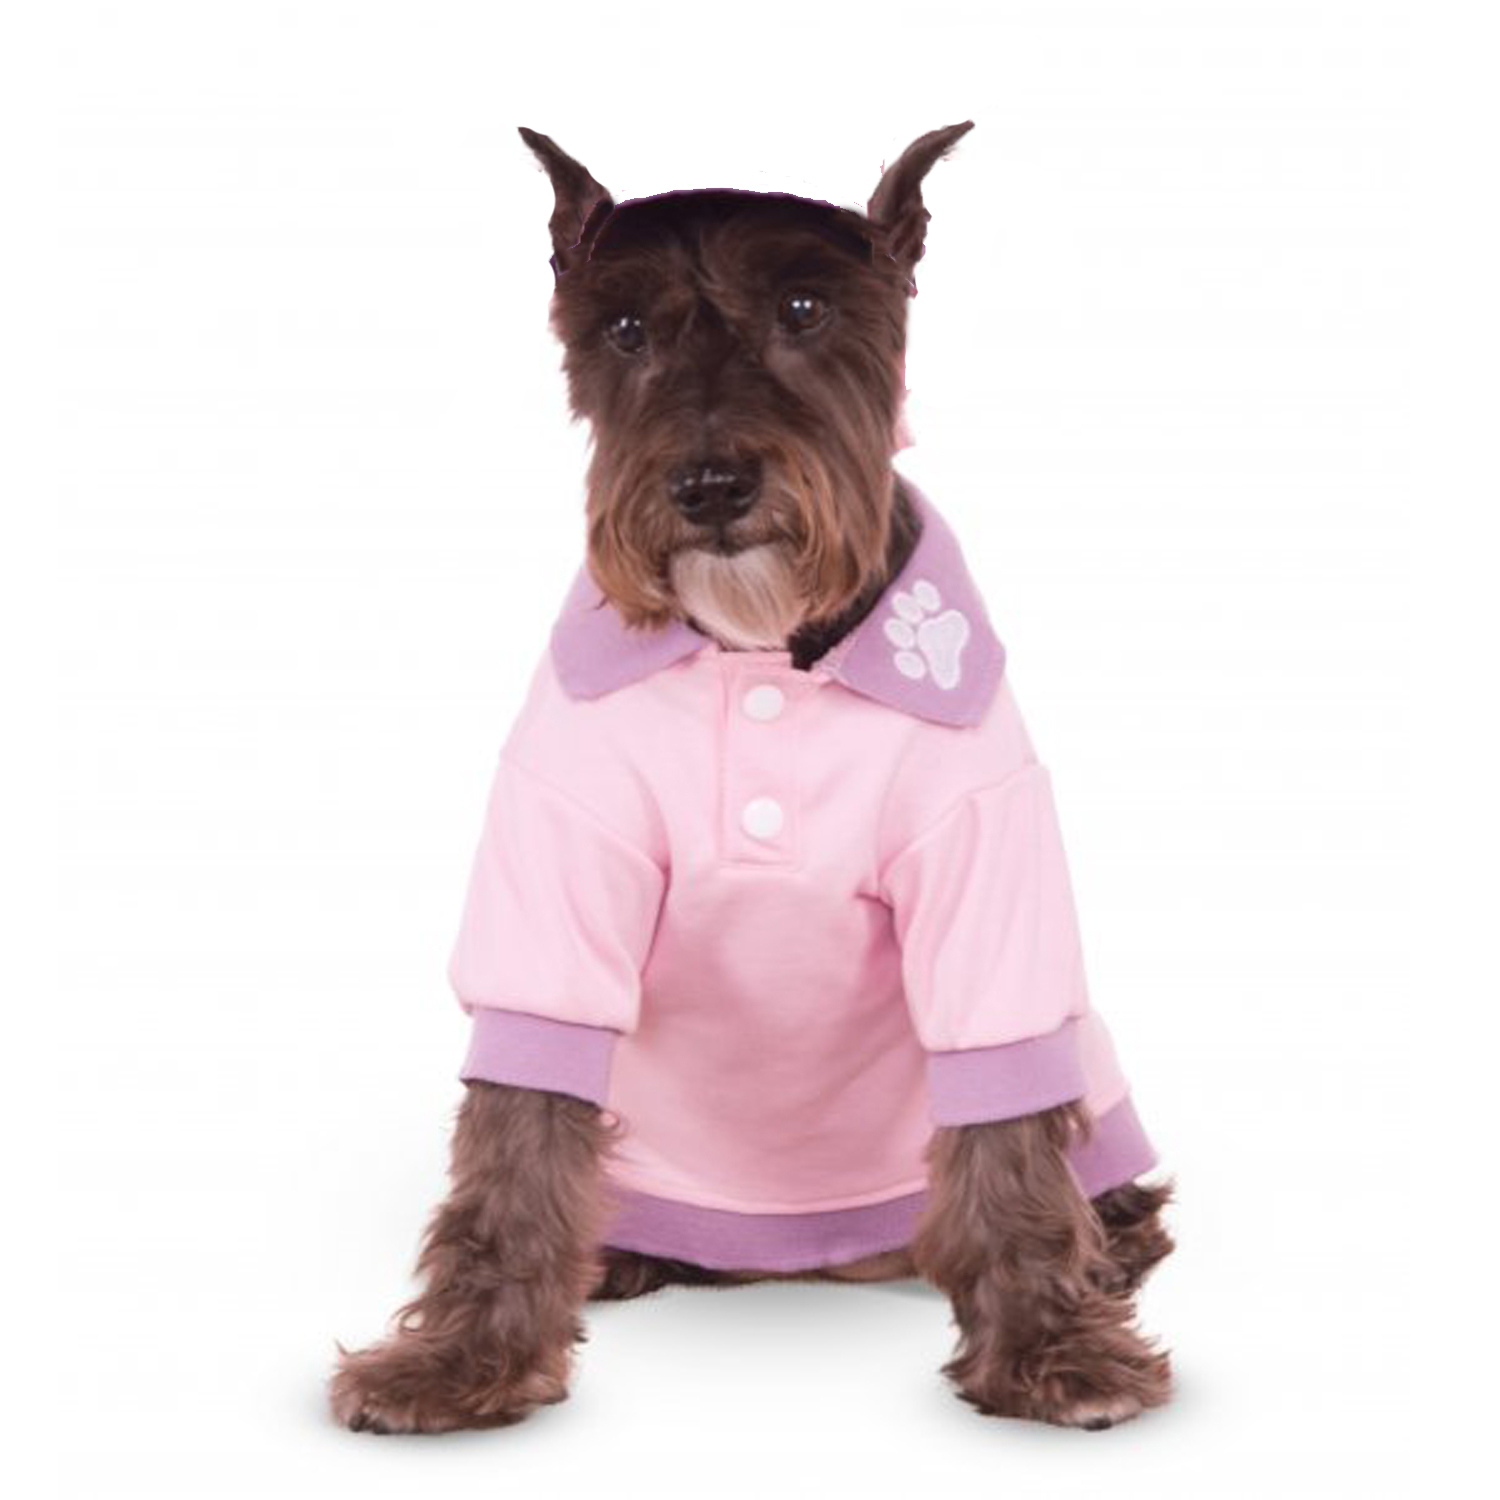 Rubies Pastel Dog Polo - Pink